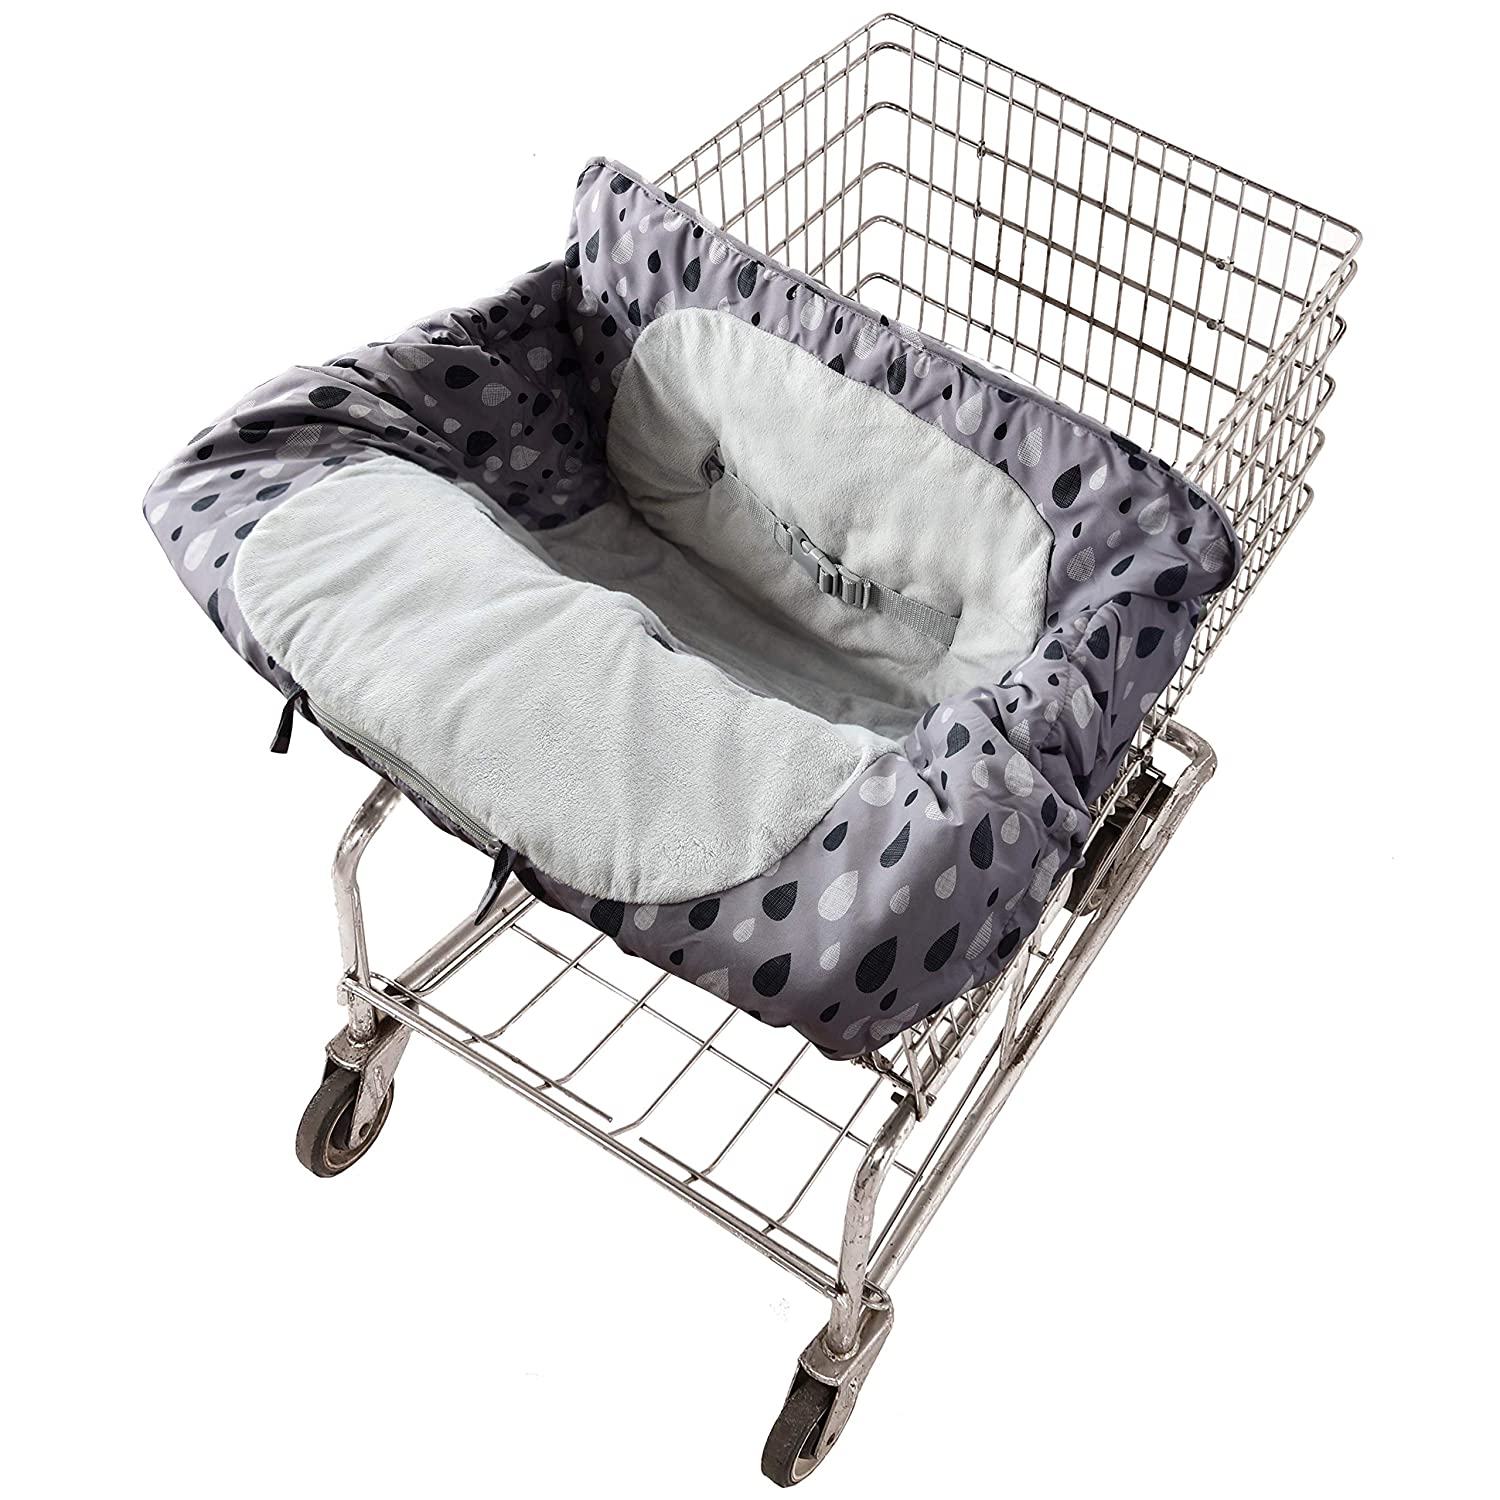 Travel Bug Baby & Toddler 2-in-1 Cozy Cover for Shopping Carts & High Chairs with Storage Bag, Universal Fit, Washable